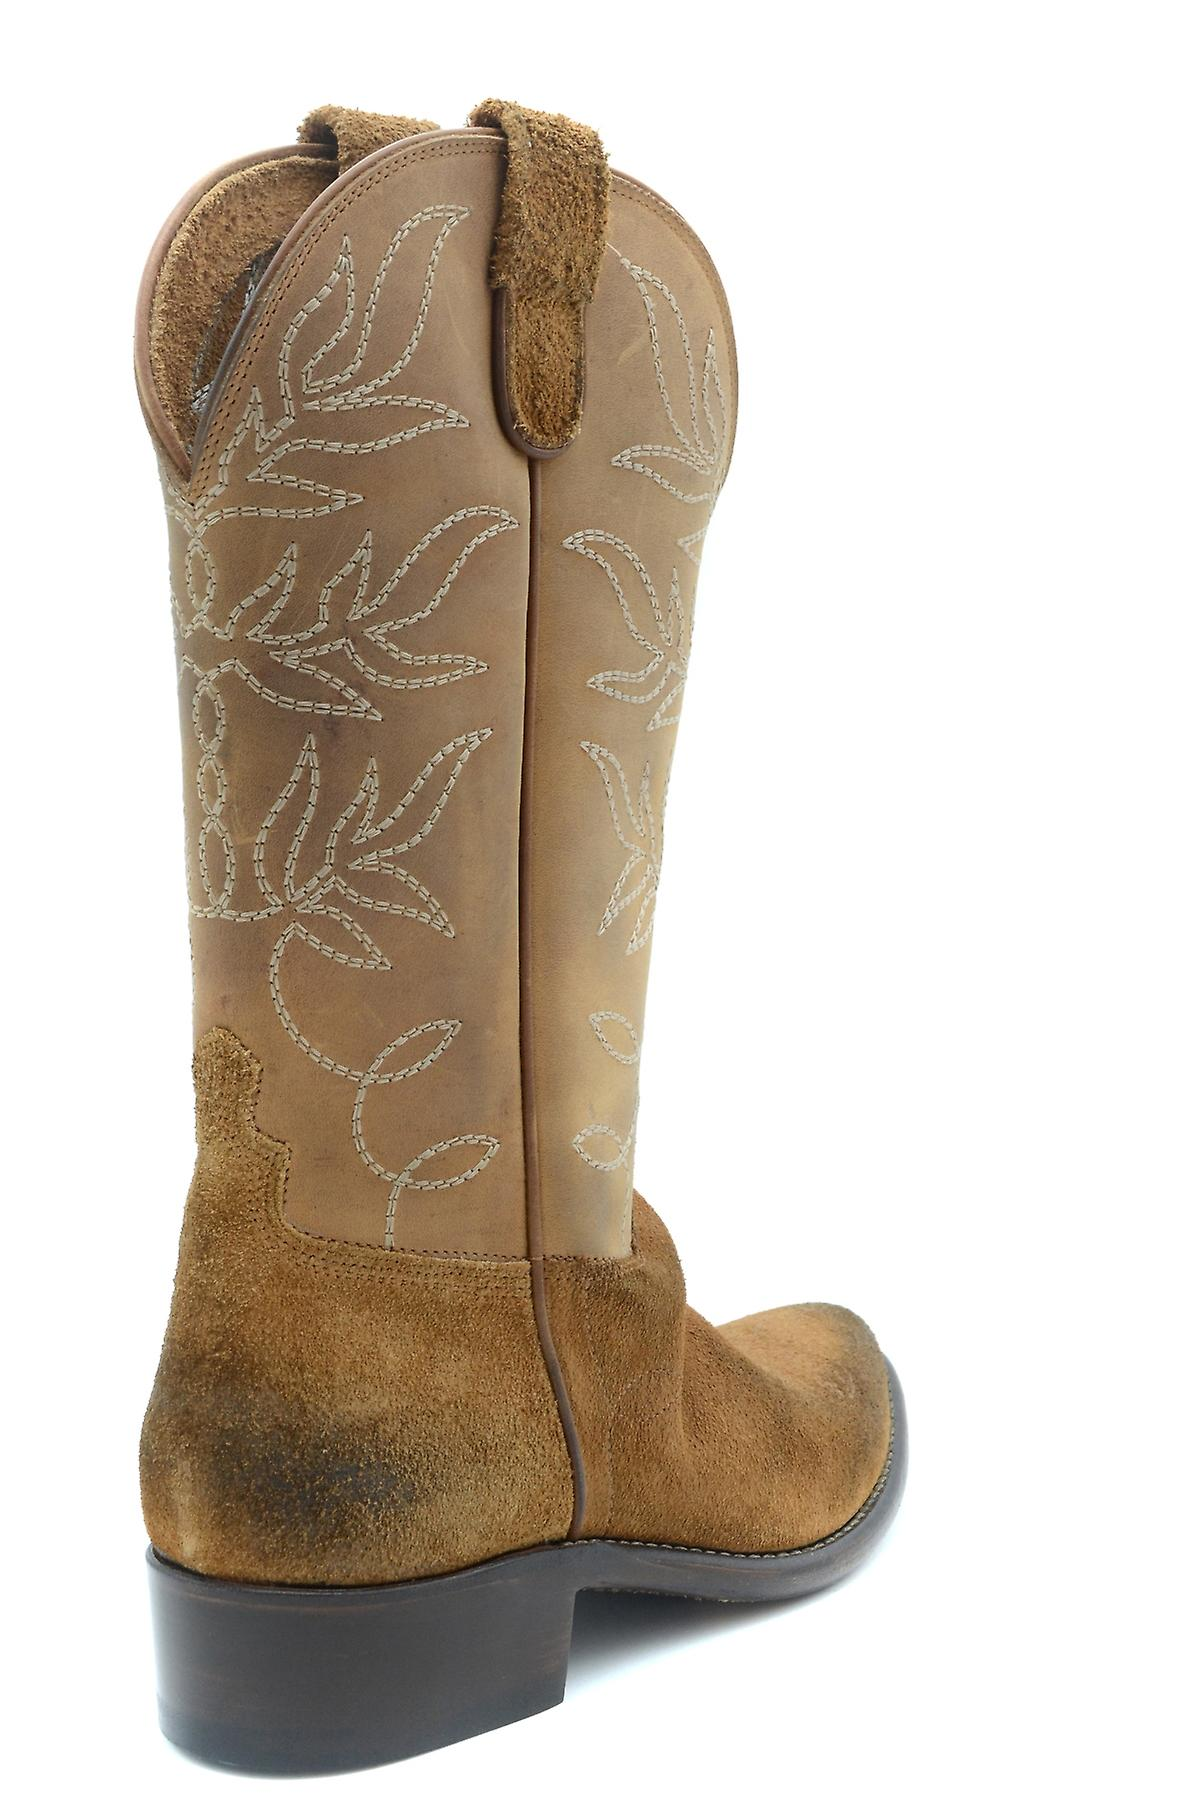 L.a L.a Tex Exbc287003 Women's Brown Suede Boots